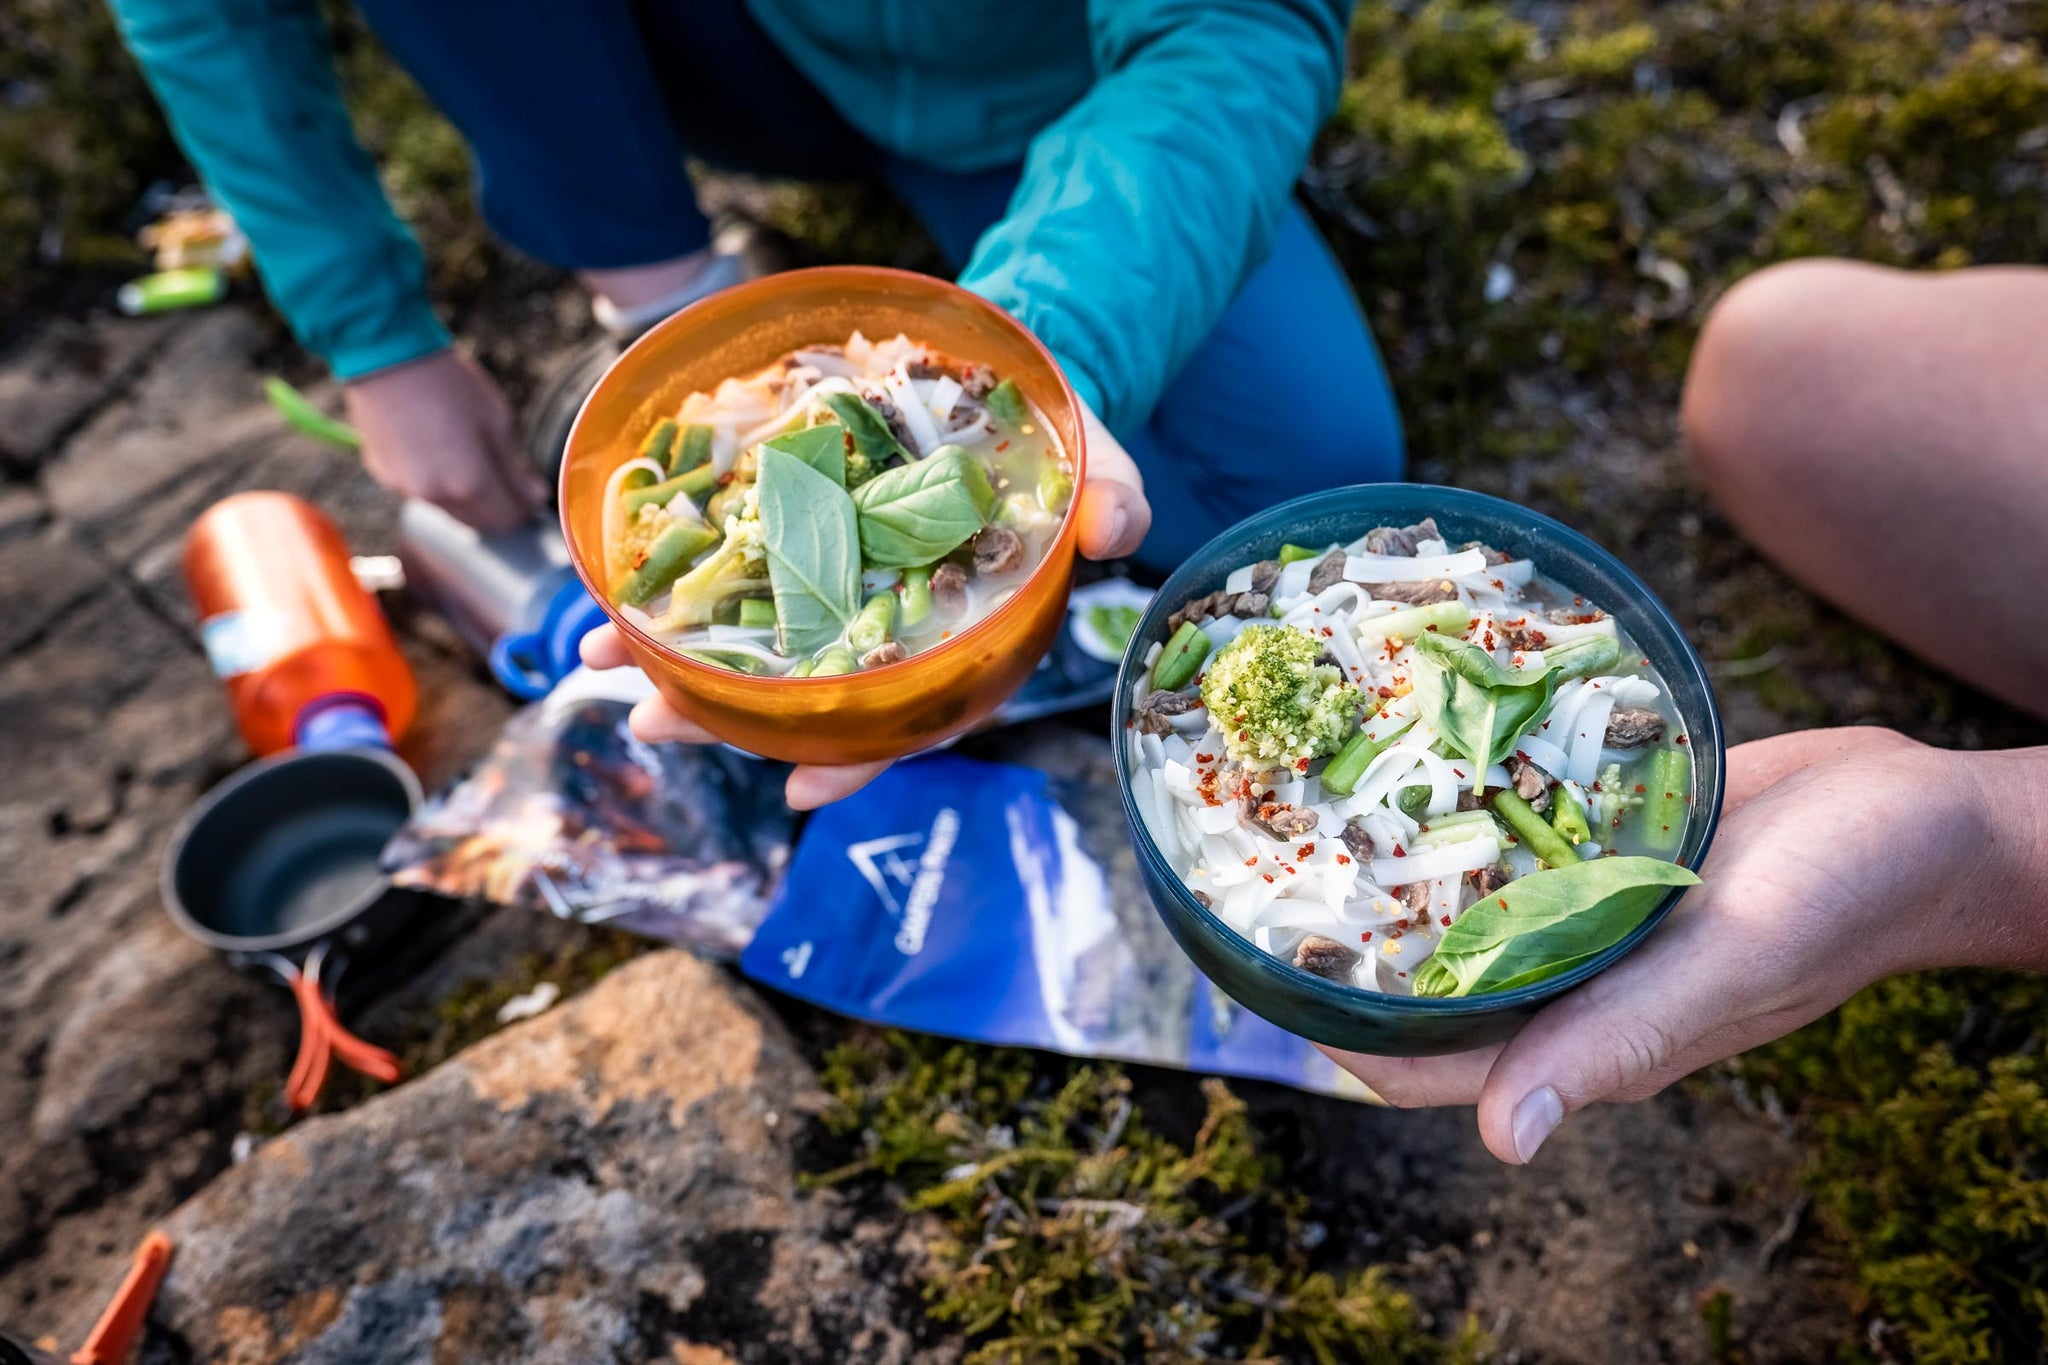 lightweight beef pho using Campers Pantry hiking food ingredients from the pantry range. Unlike dehydrated meals this is way lighter so you wont know you are carrying it. Meal plan this on your next Overland Track trip in Tasmania.